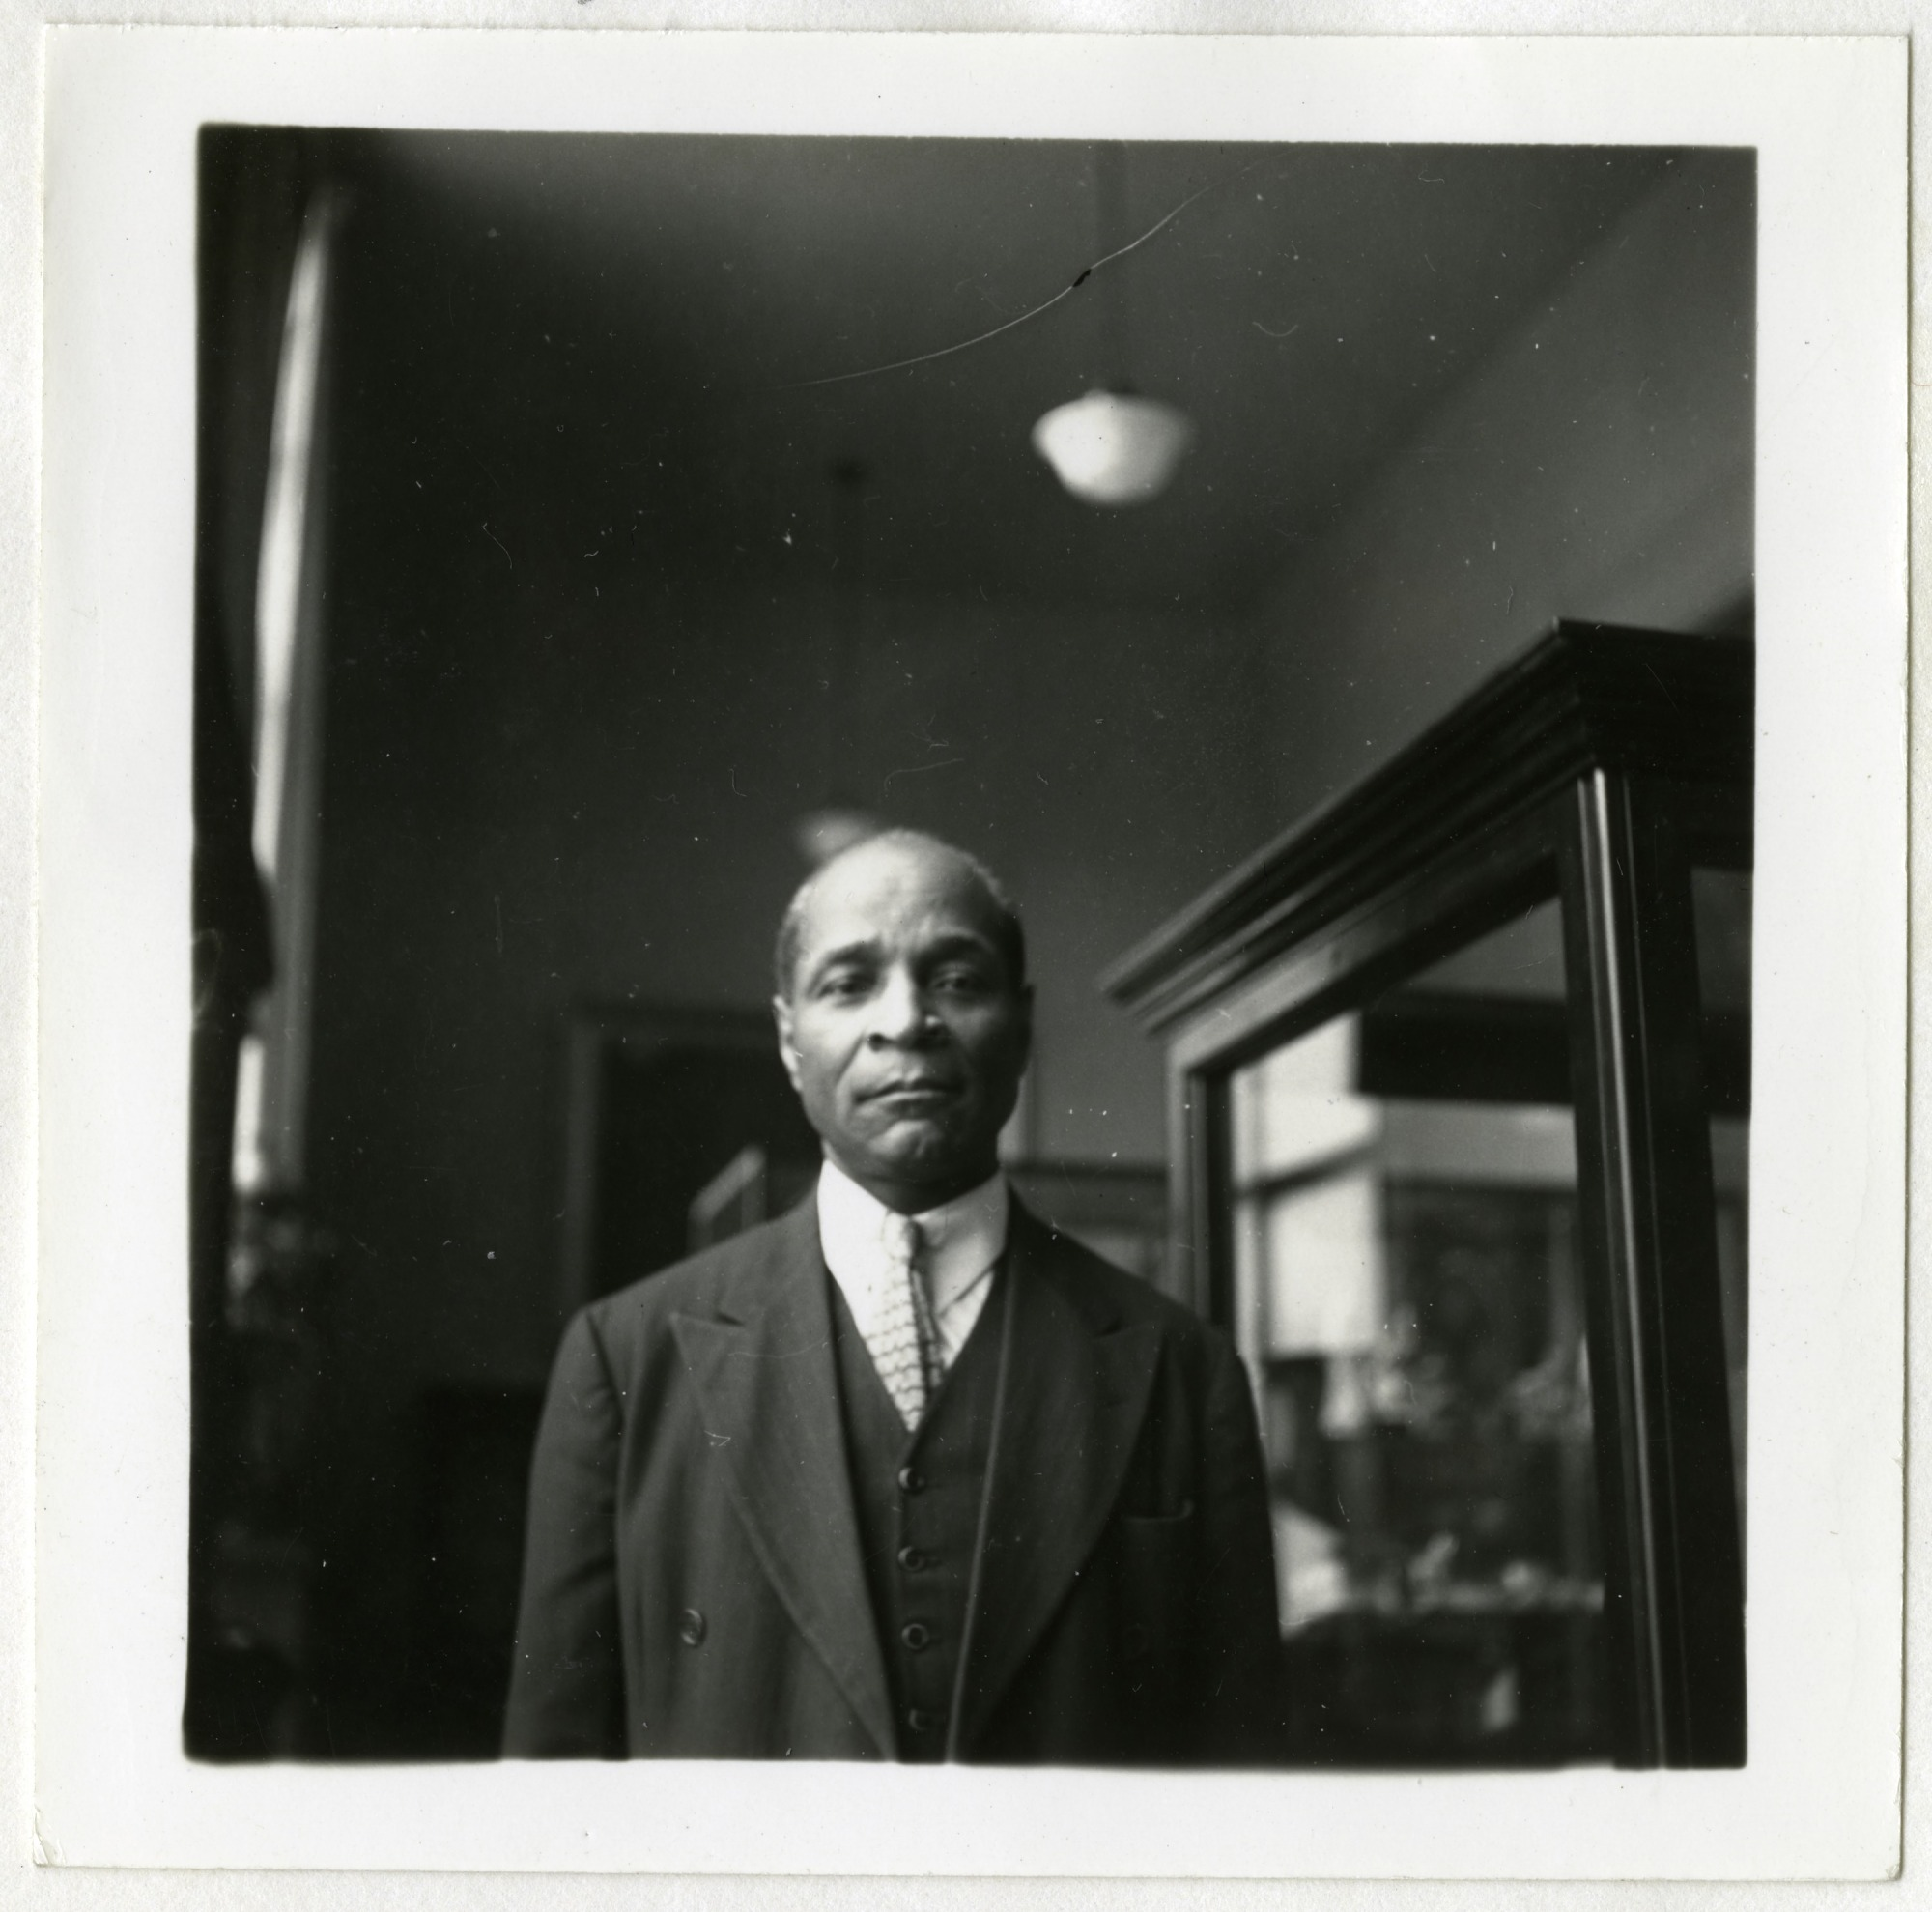 Mr. F. Jackson, by Tolman, Ruel P (Ruel Pardee) b. 1878, March 1943, Smithsonian Archives - History Div, SIA2011-1302 and 32159-1.